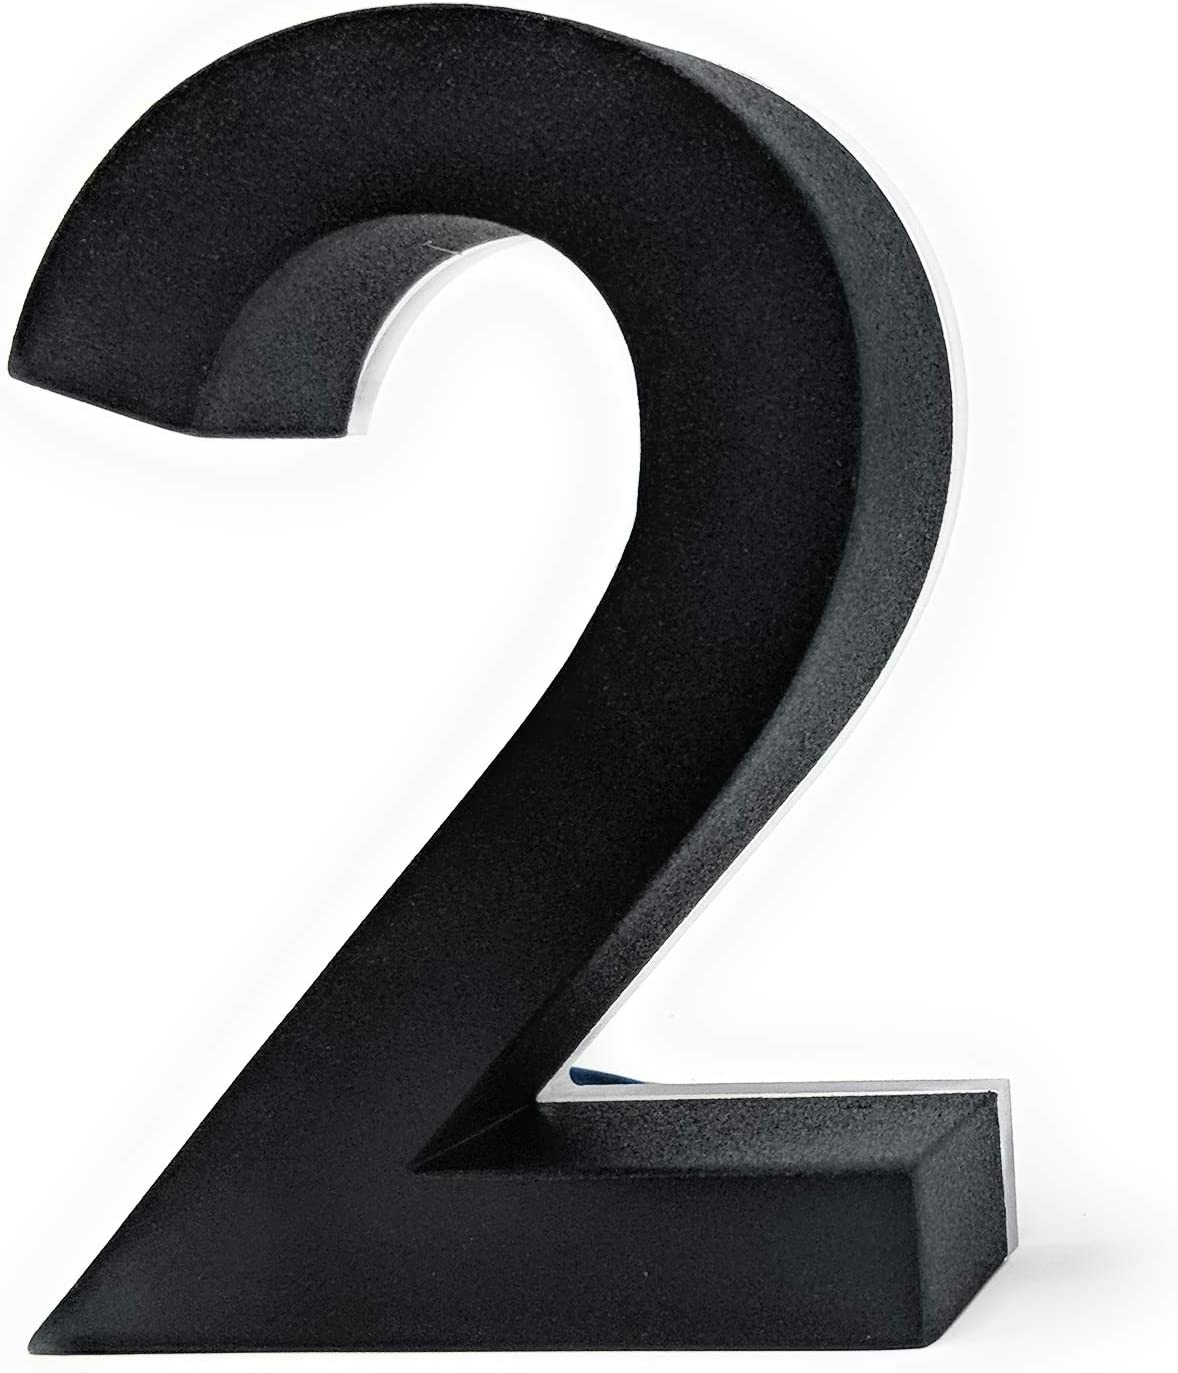 4 Inch House Award-winning store Numbers 3000k LED Address Homes Signs Direct stock discount for Modern